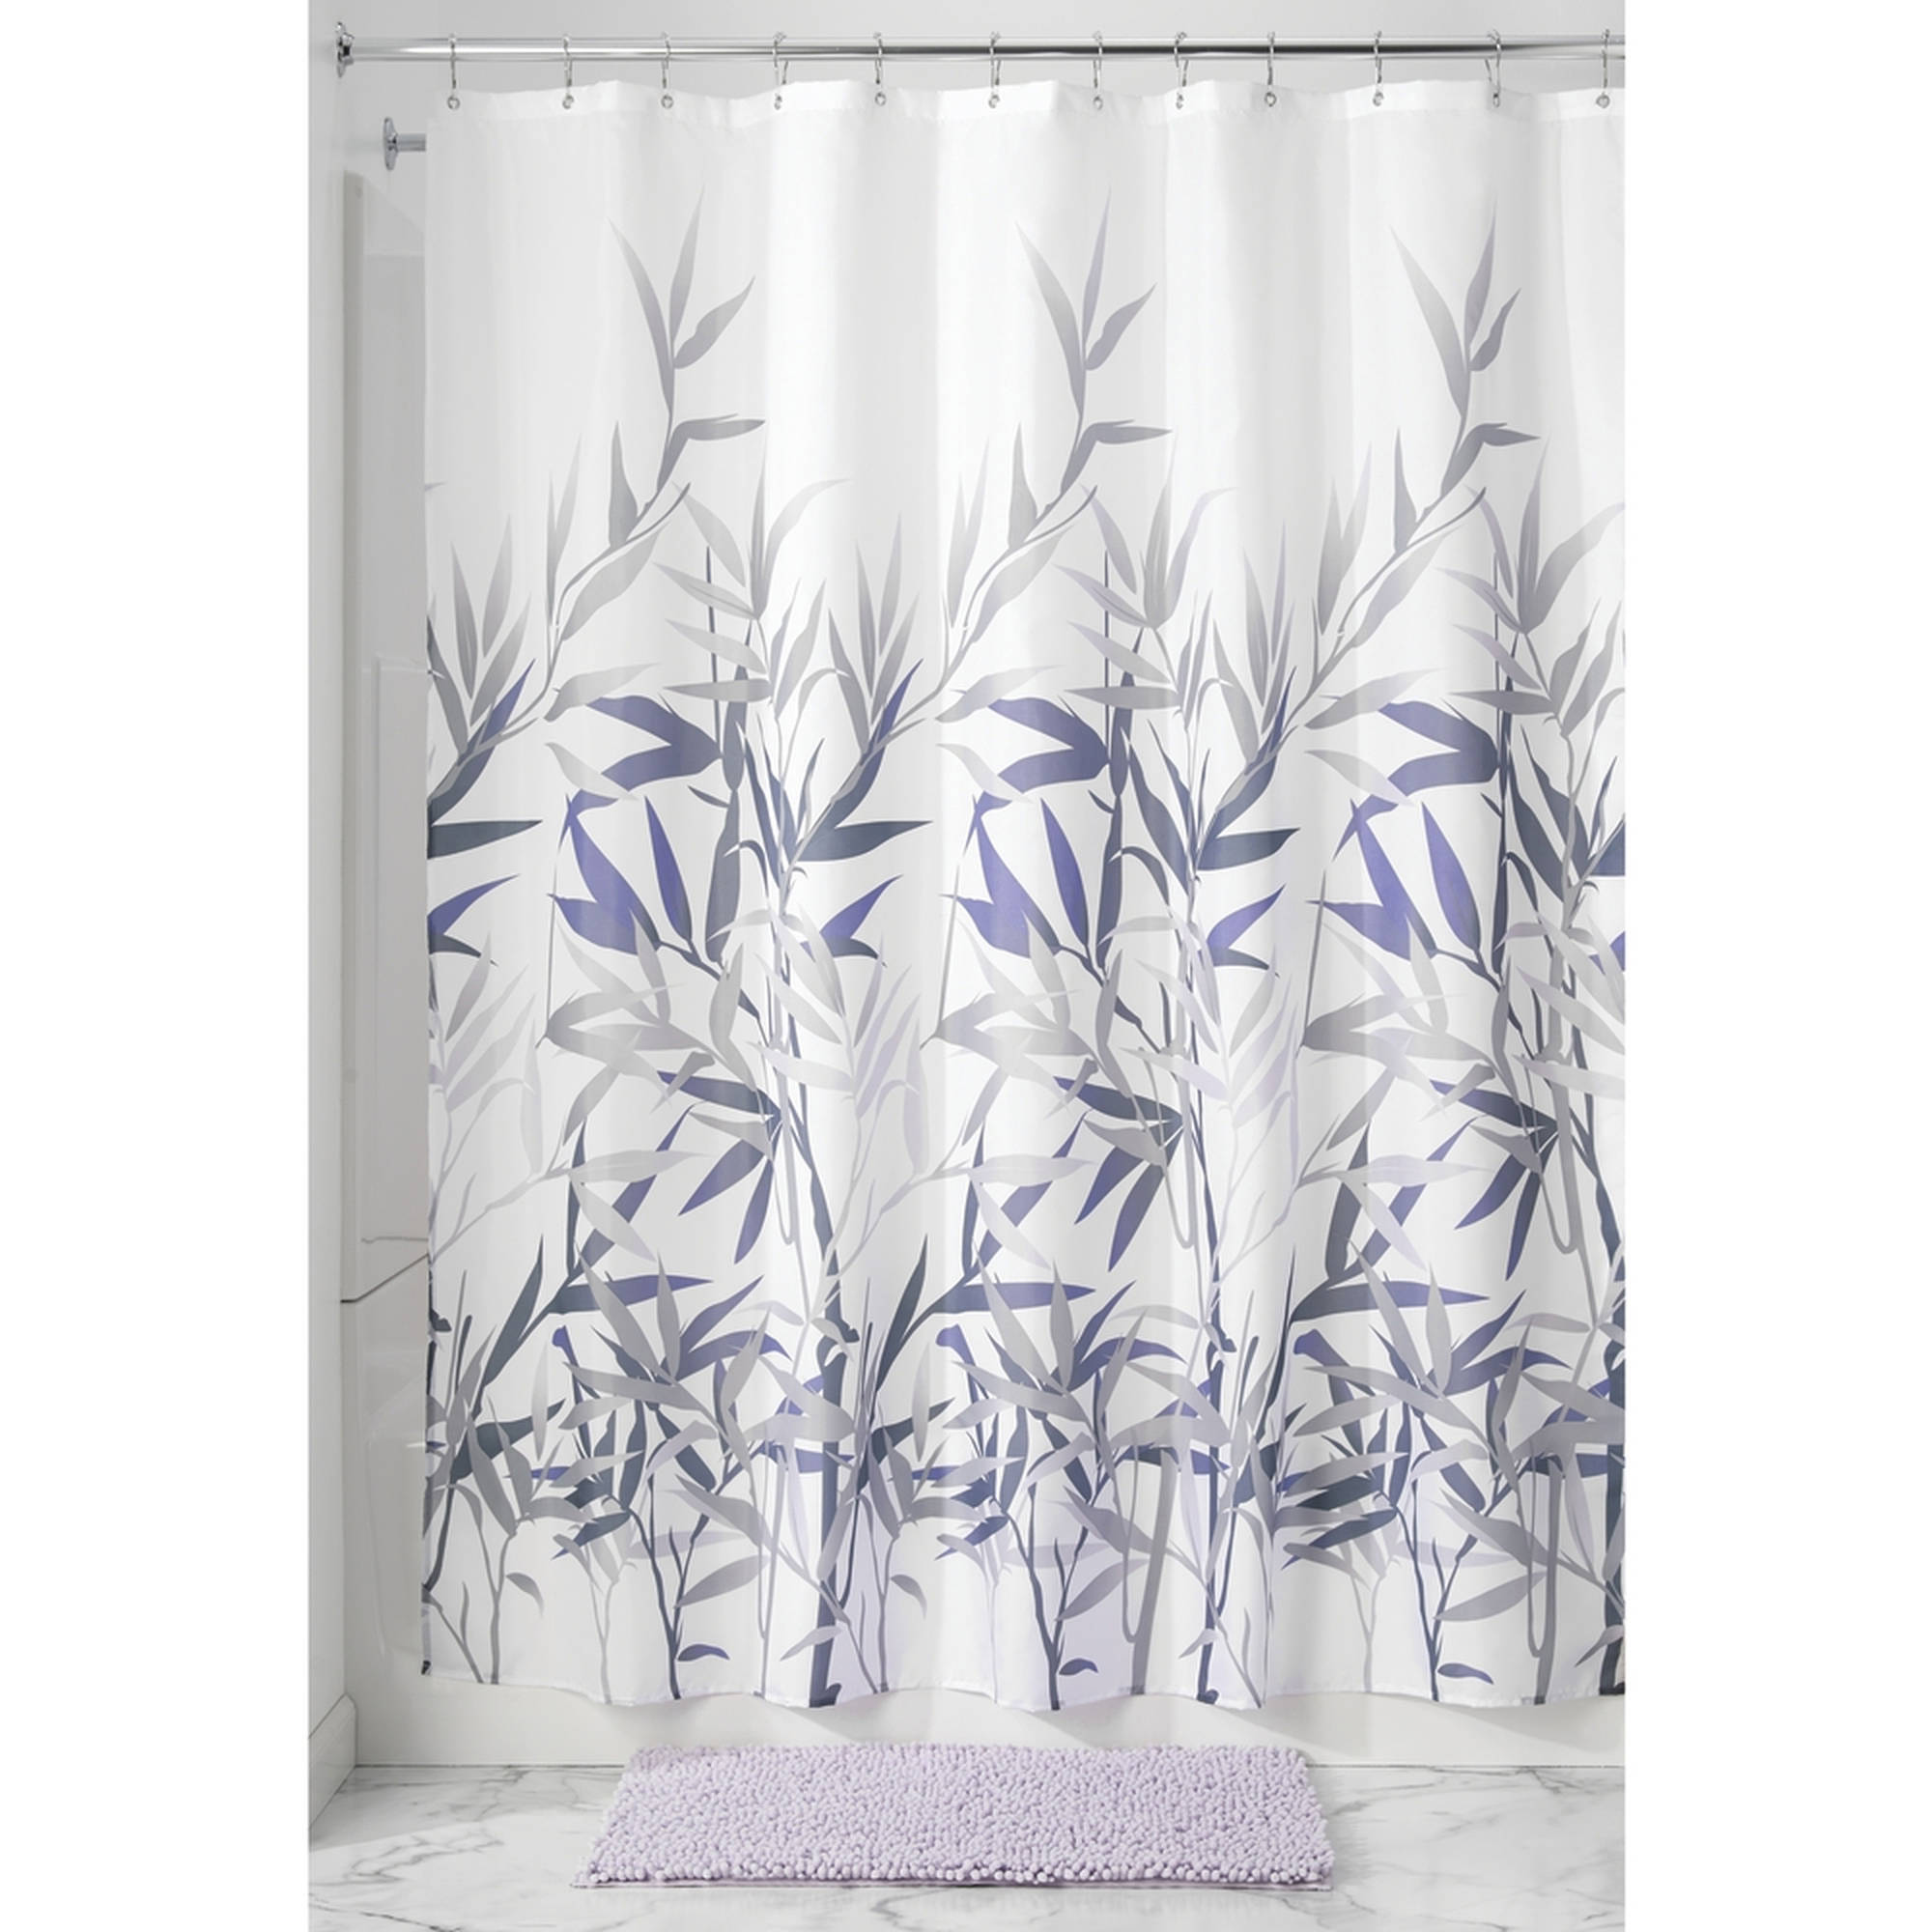 "InterDesign Anzu Fabric Shower Curtain, Standard 72"" x 72"", Purple/Gray"